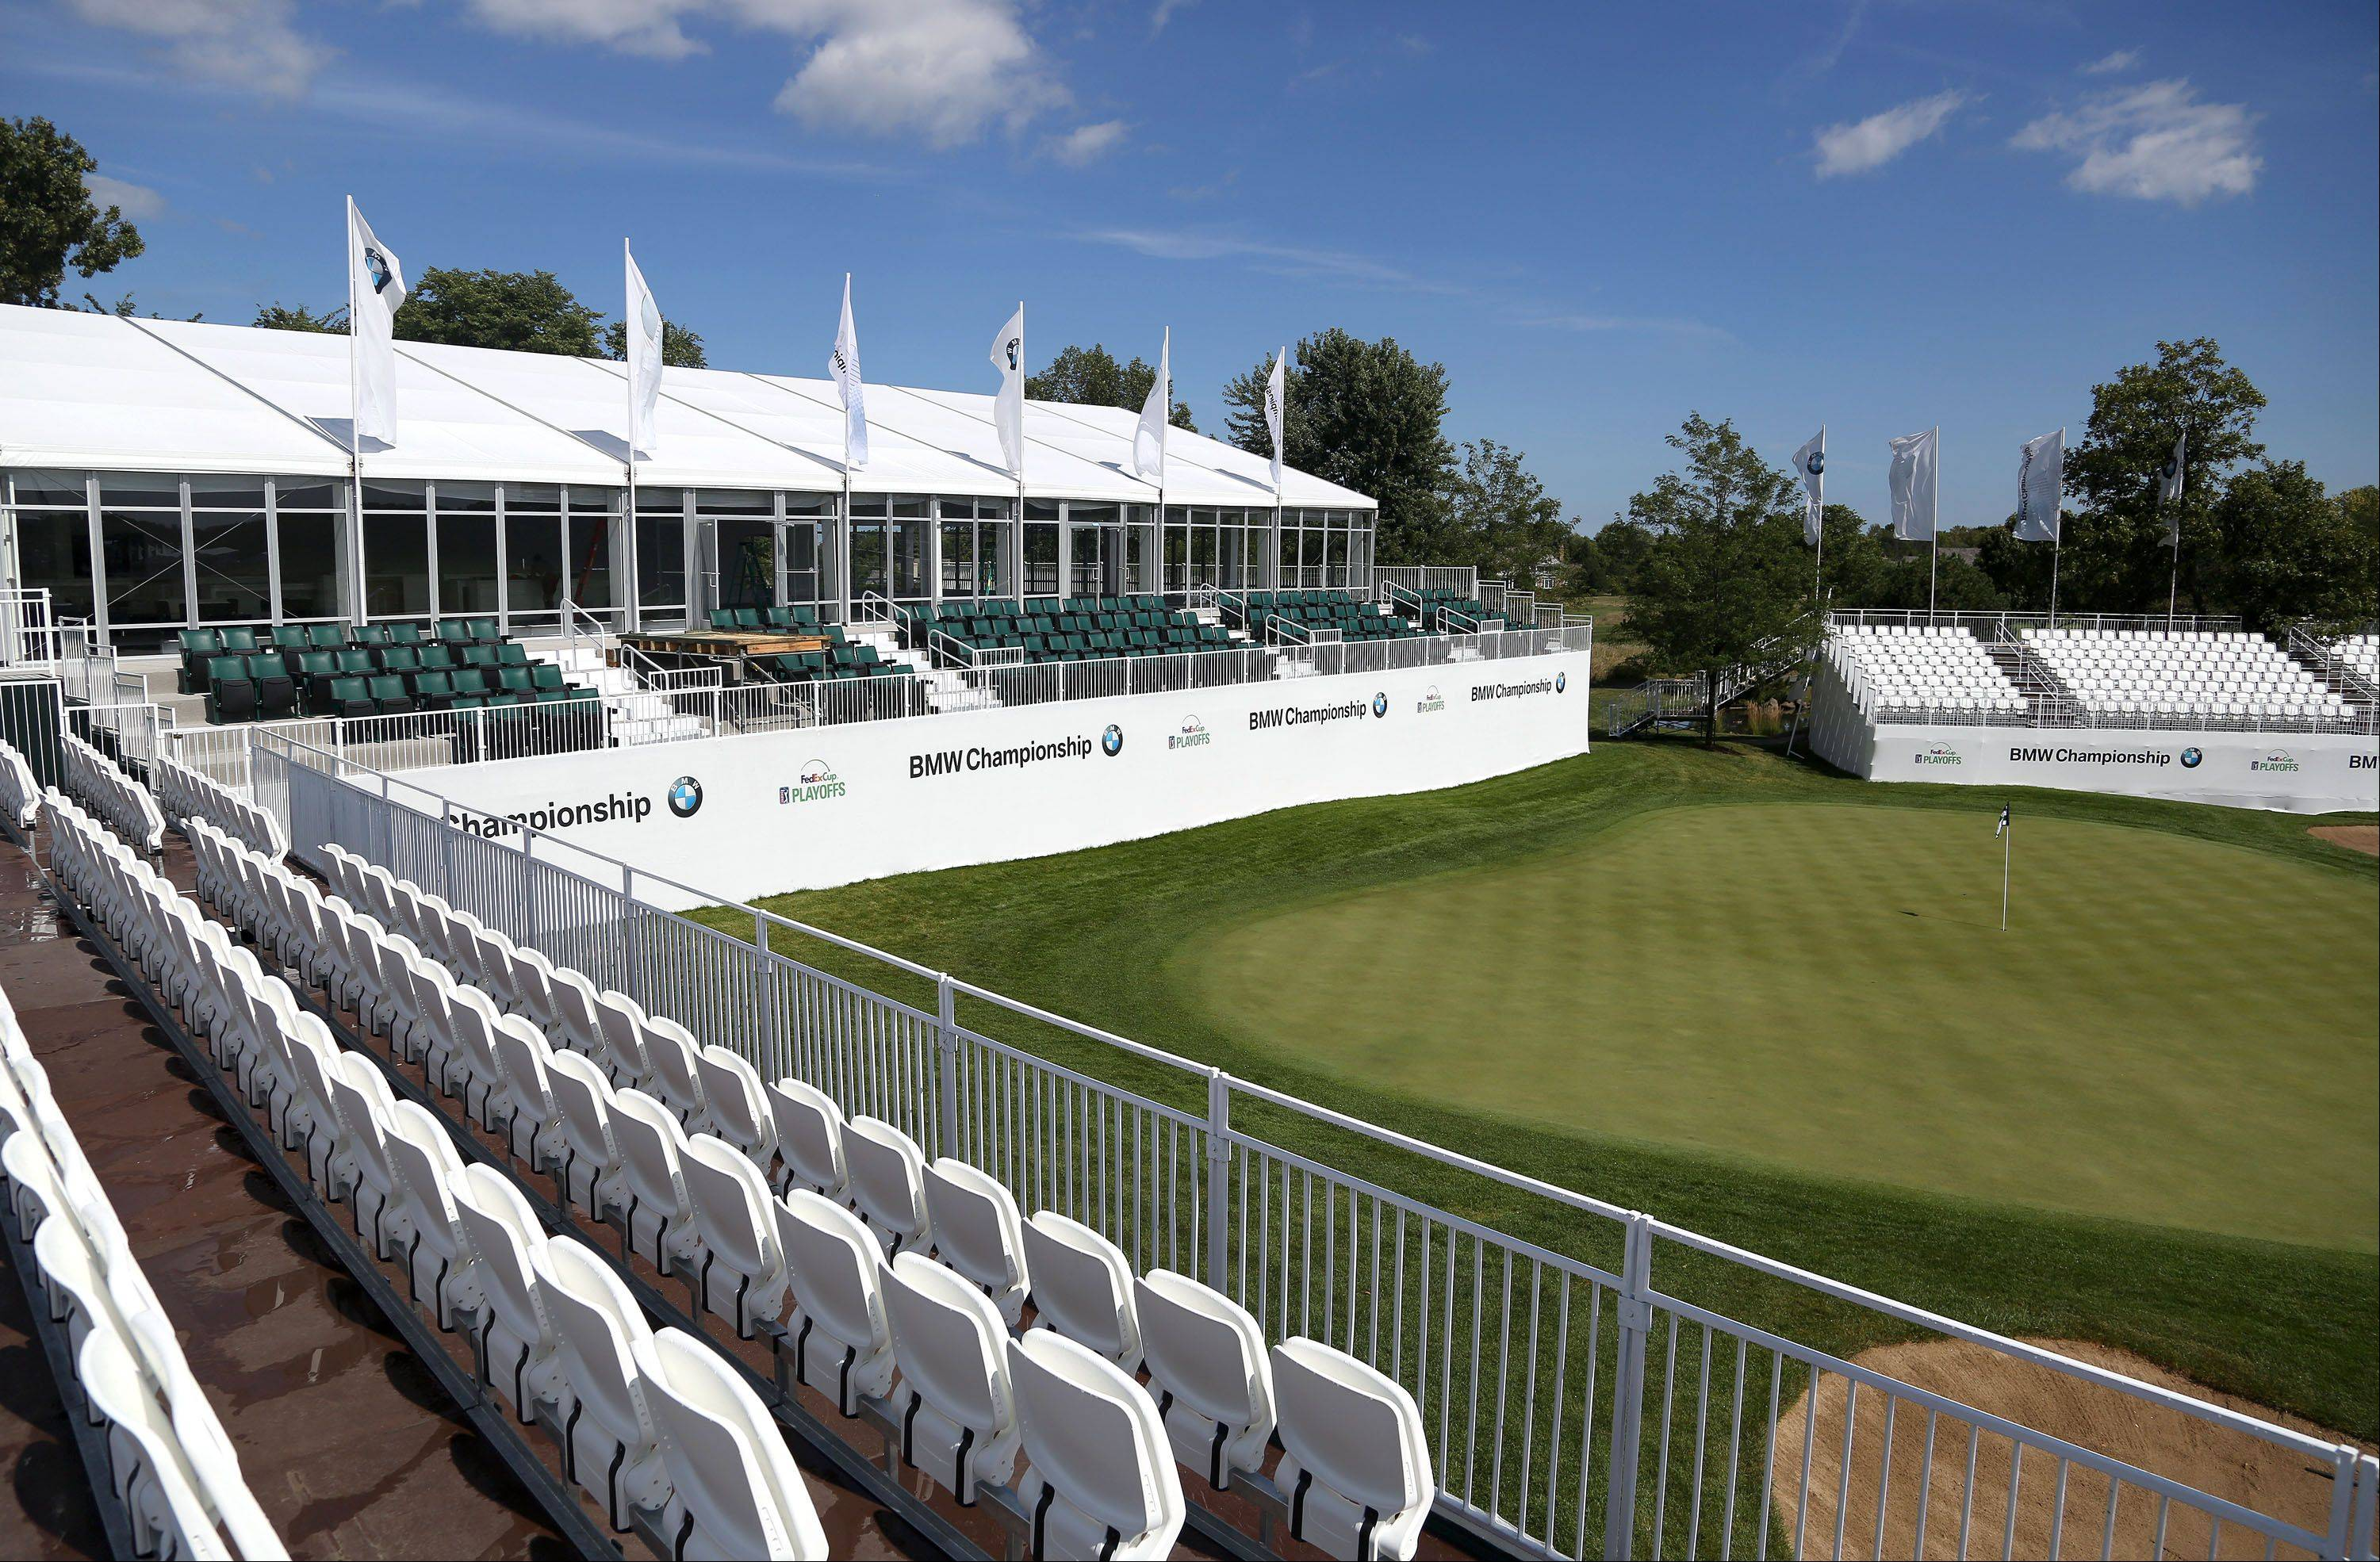 BMW Championship suites taking shape at Conway Farms